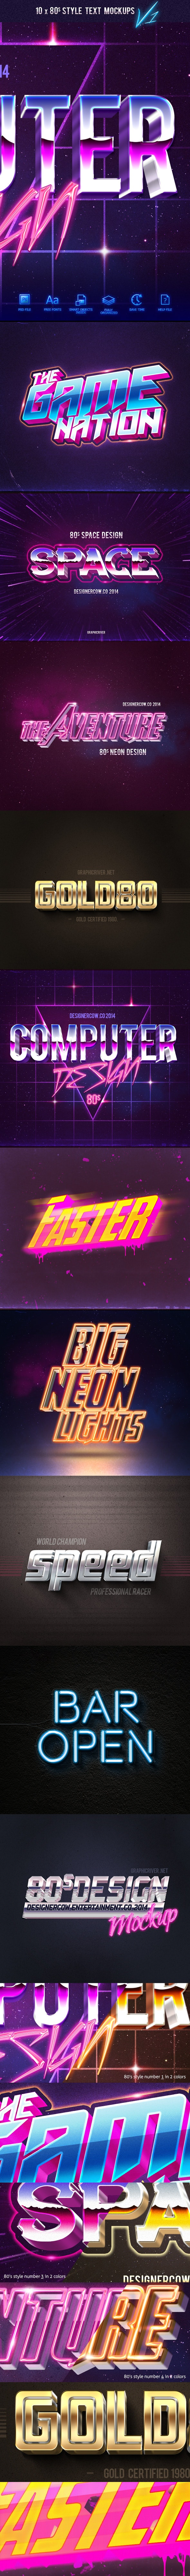 80's Style Text Mockups V1 - Text Effects Actions